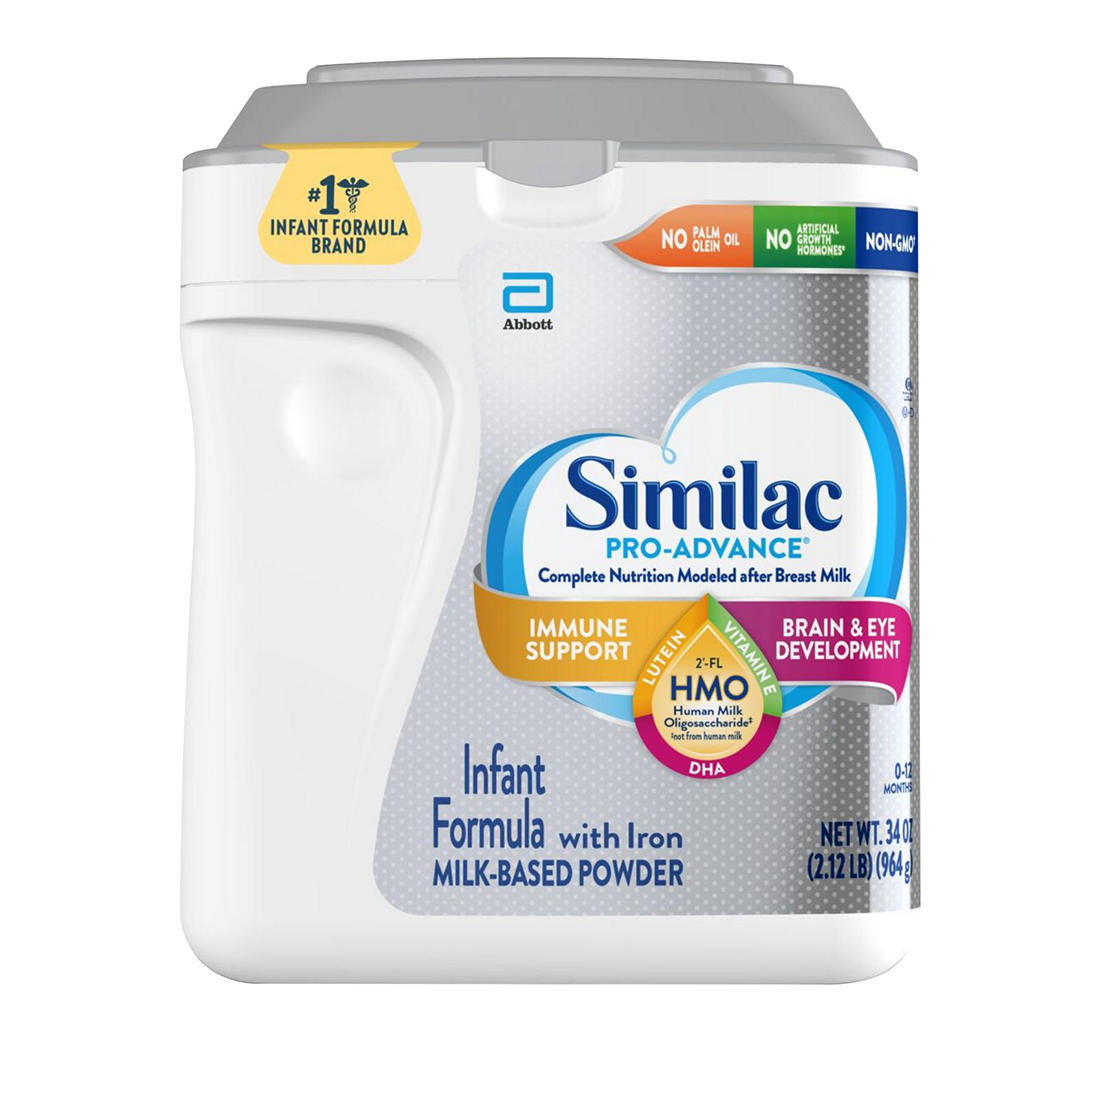 picture regarding $5 Similac Printable Coupon called Similac Qualified-Progress Non-GMO with 2-FL HMO Little one System with Iron Powder, 34 oz.